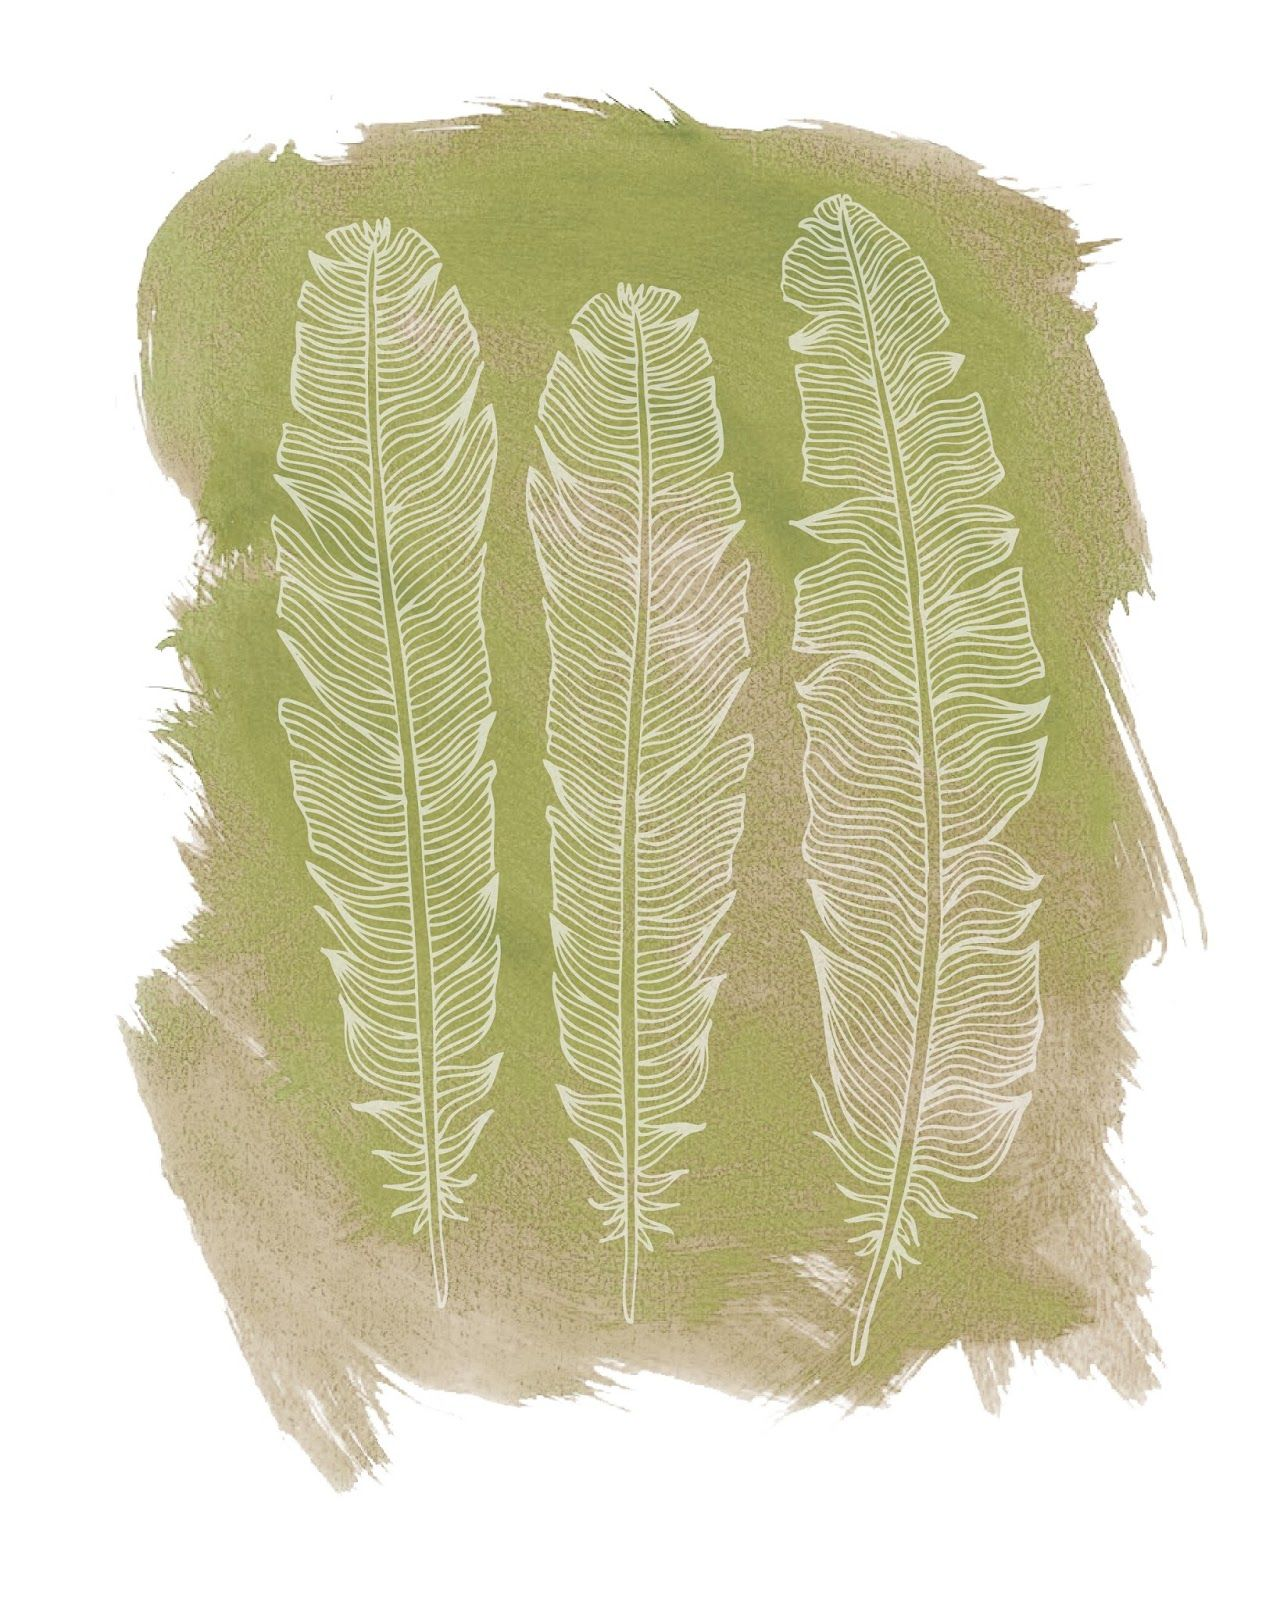 Happy Monday everyone! Today I am giving you 5 free feather ...